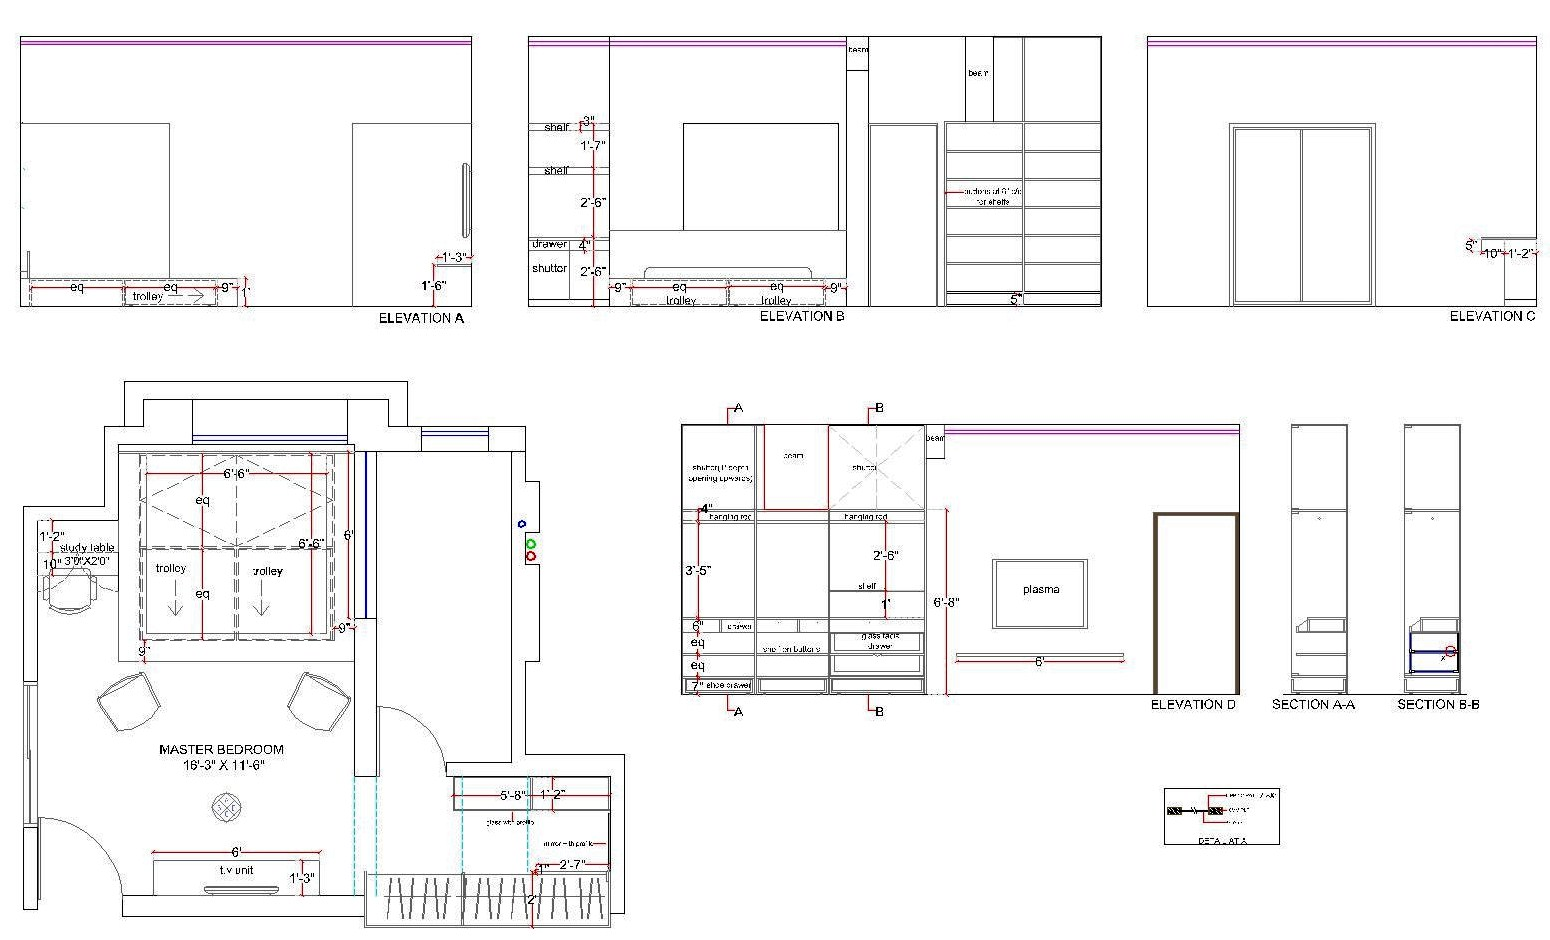 ... study table in section elevation d shows the side elevation of the bed